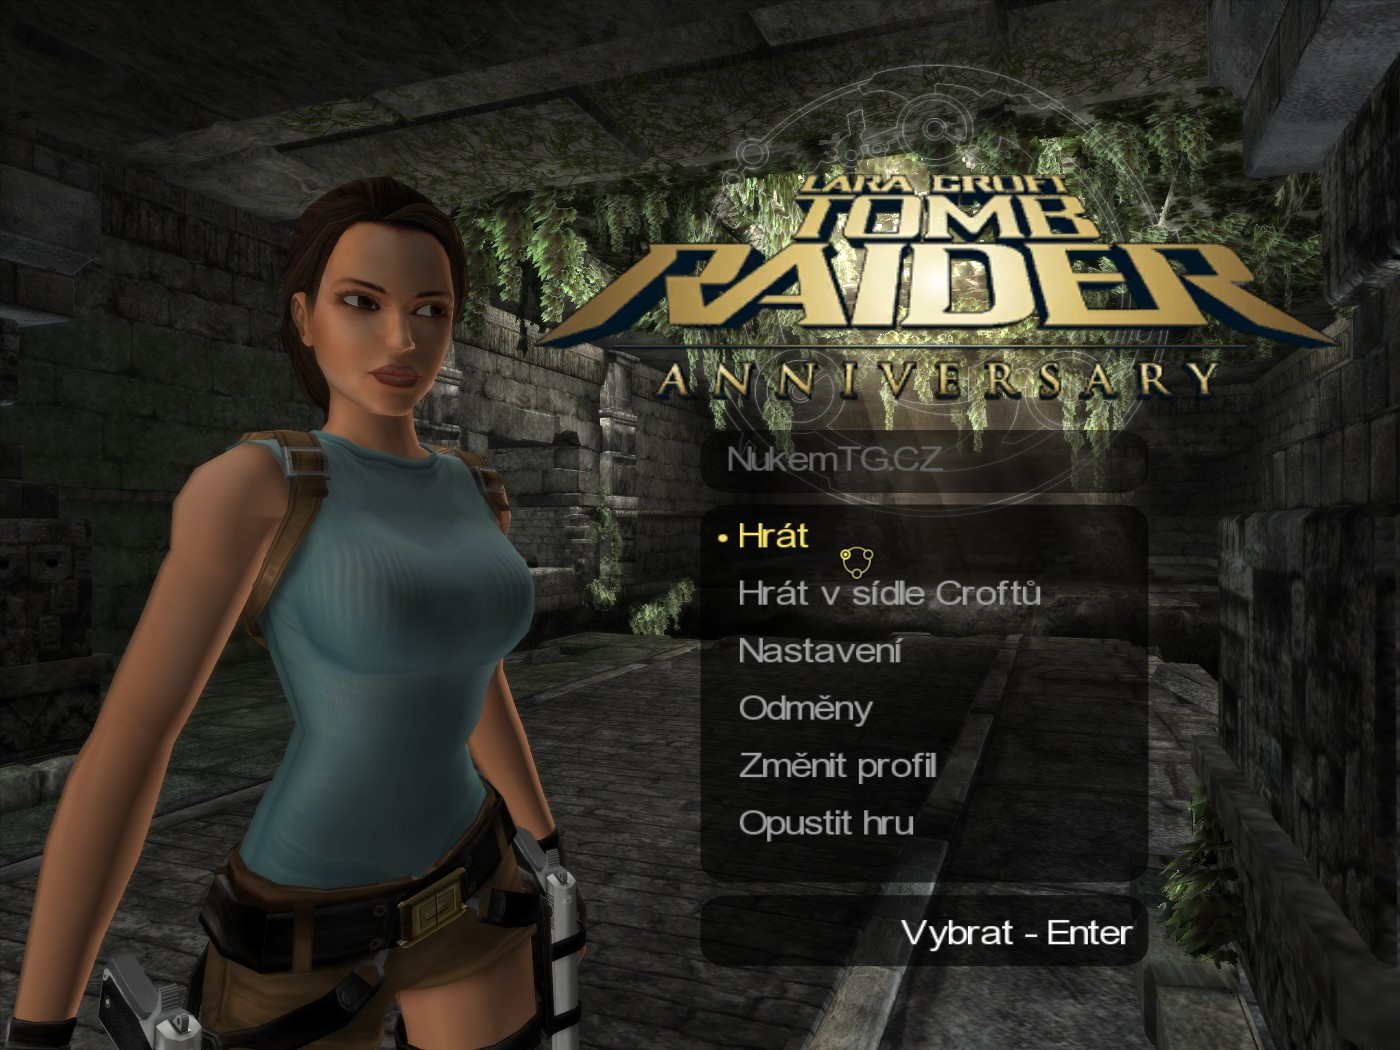 Tom rider aniversary full nude mod download sex images